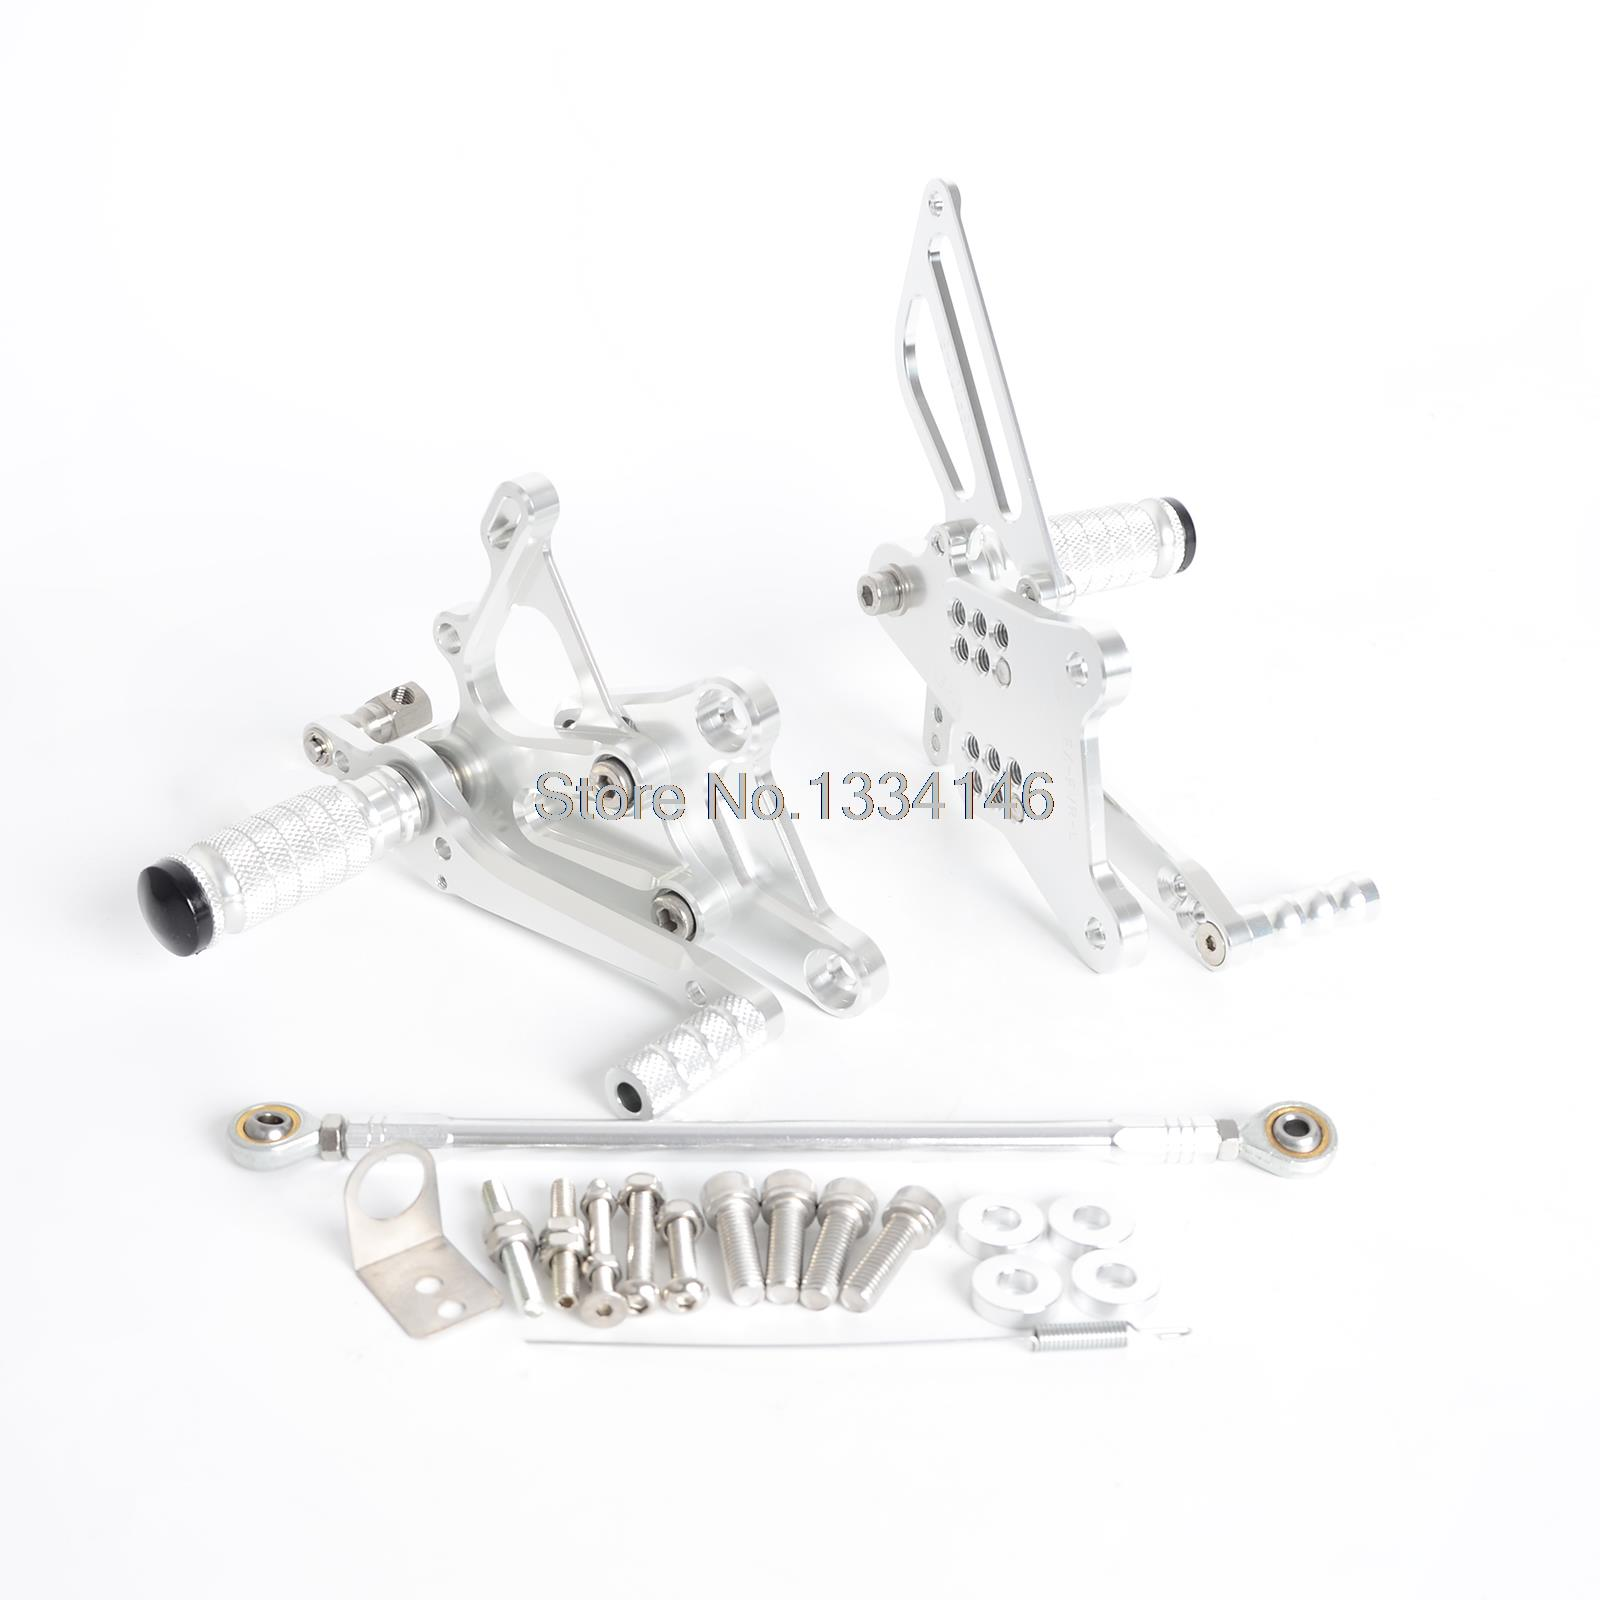 Silver CNC Billet Racing Adjustable Foot Pegs Rear Sets For Honda VFR400 NC30 RVF400 NC35 billet rear hub carriers for losi 5ive t